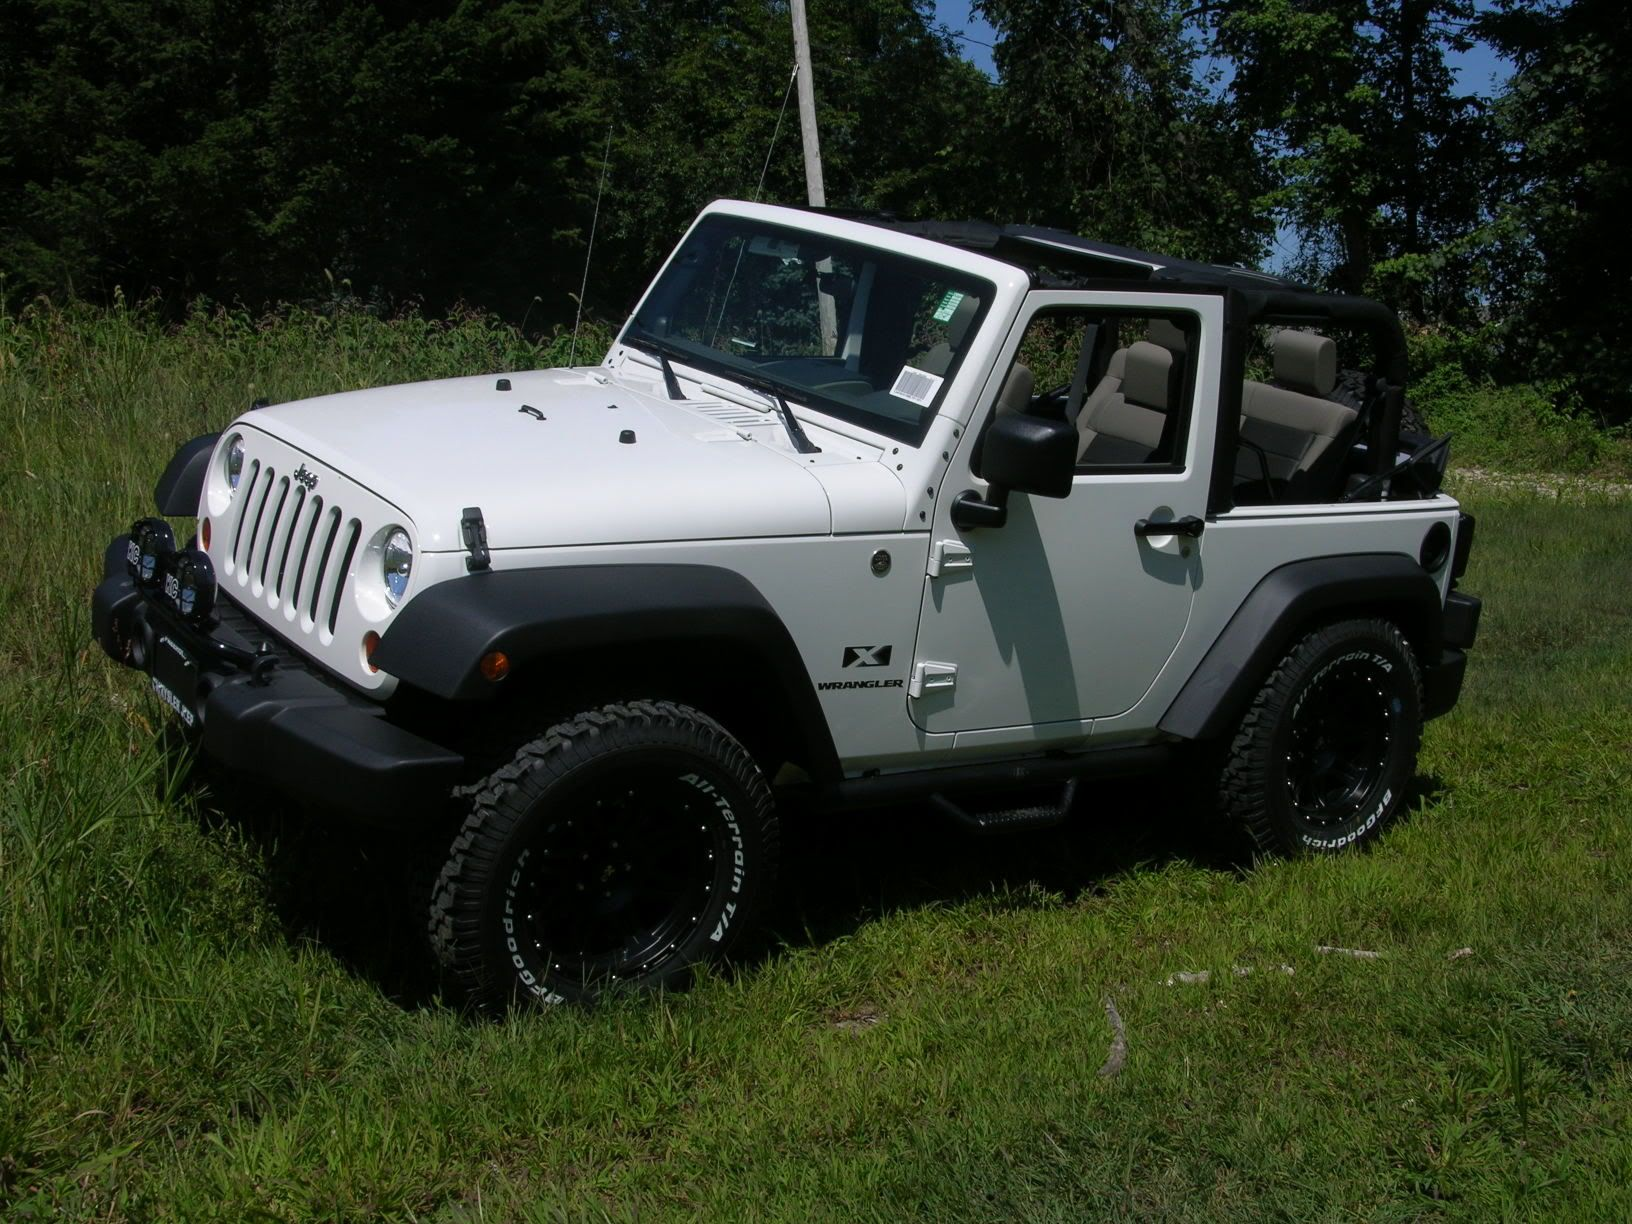 White Jeep Wrangler With A Black Tag Top This Will Be My First Car